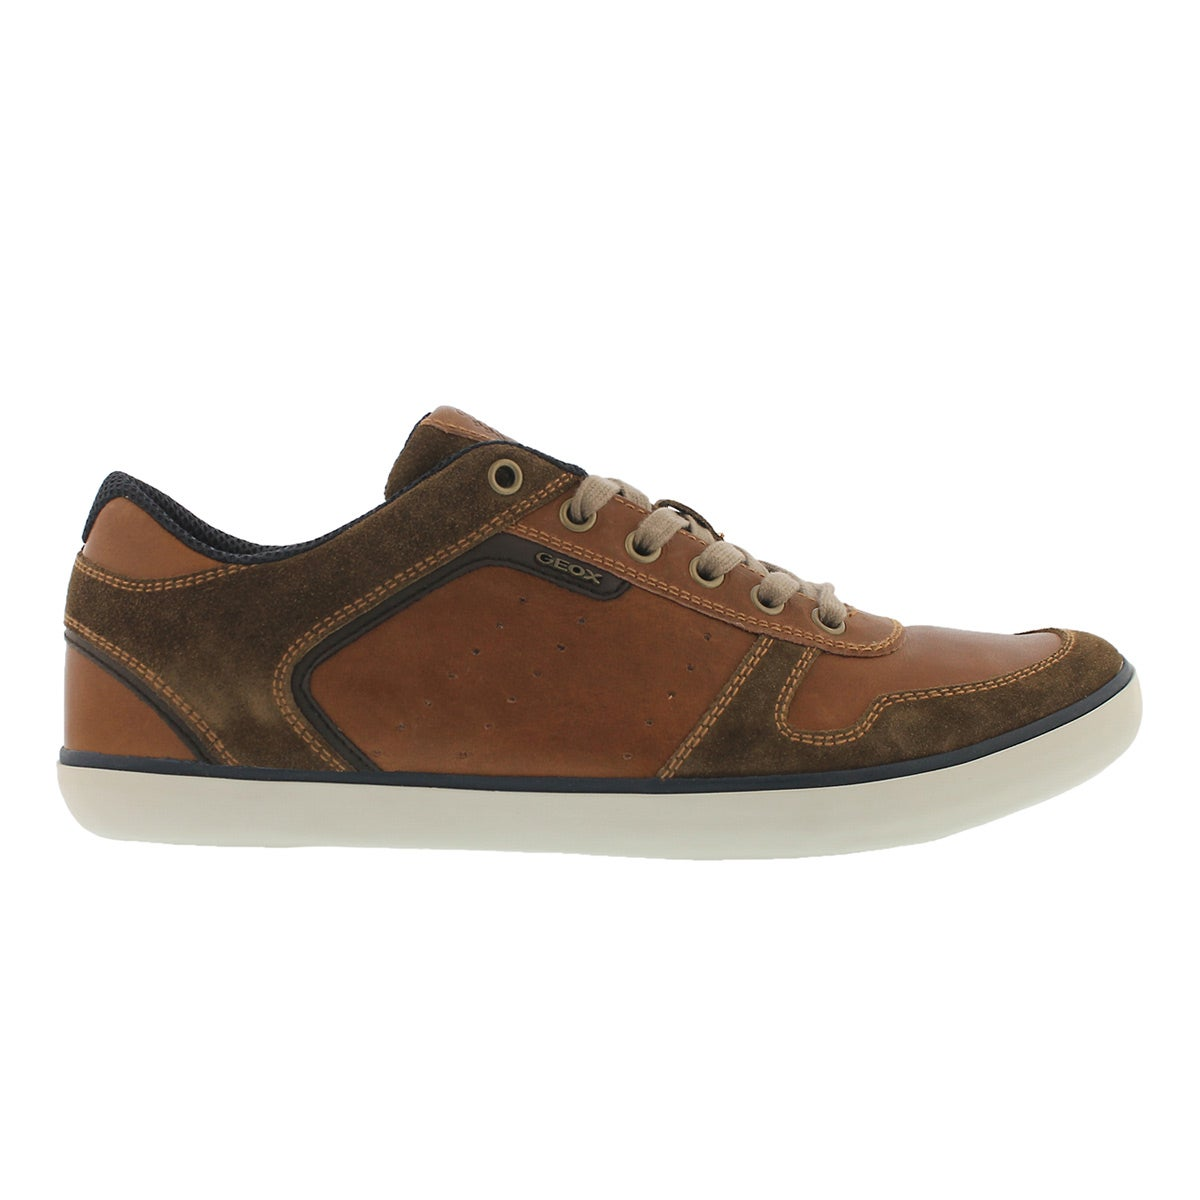 Mns Box brown lace up fashion snkr